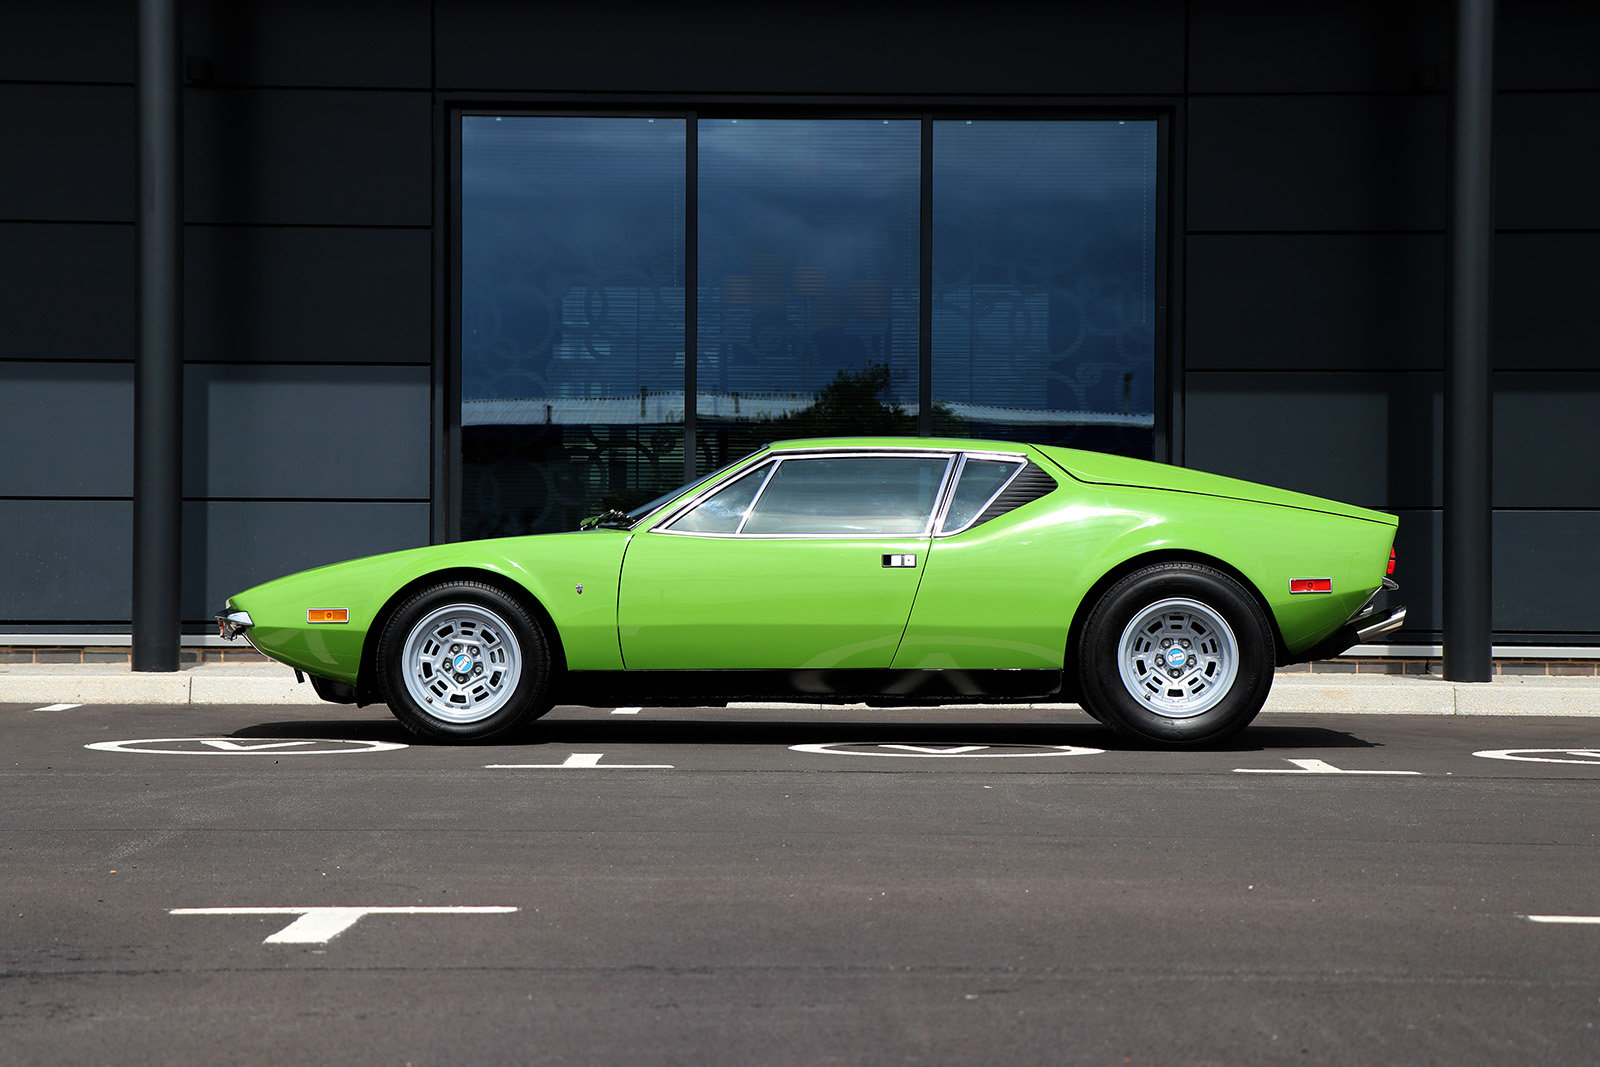 For Sale UK Fully Restored 1972 De Tomaso Pantera For Sale (picture 2 of 6)